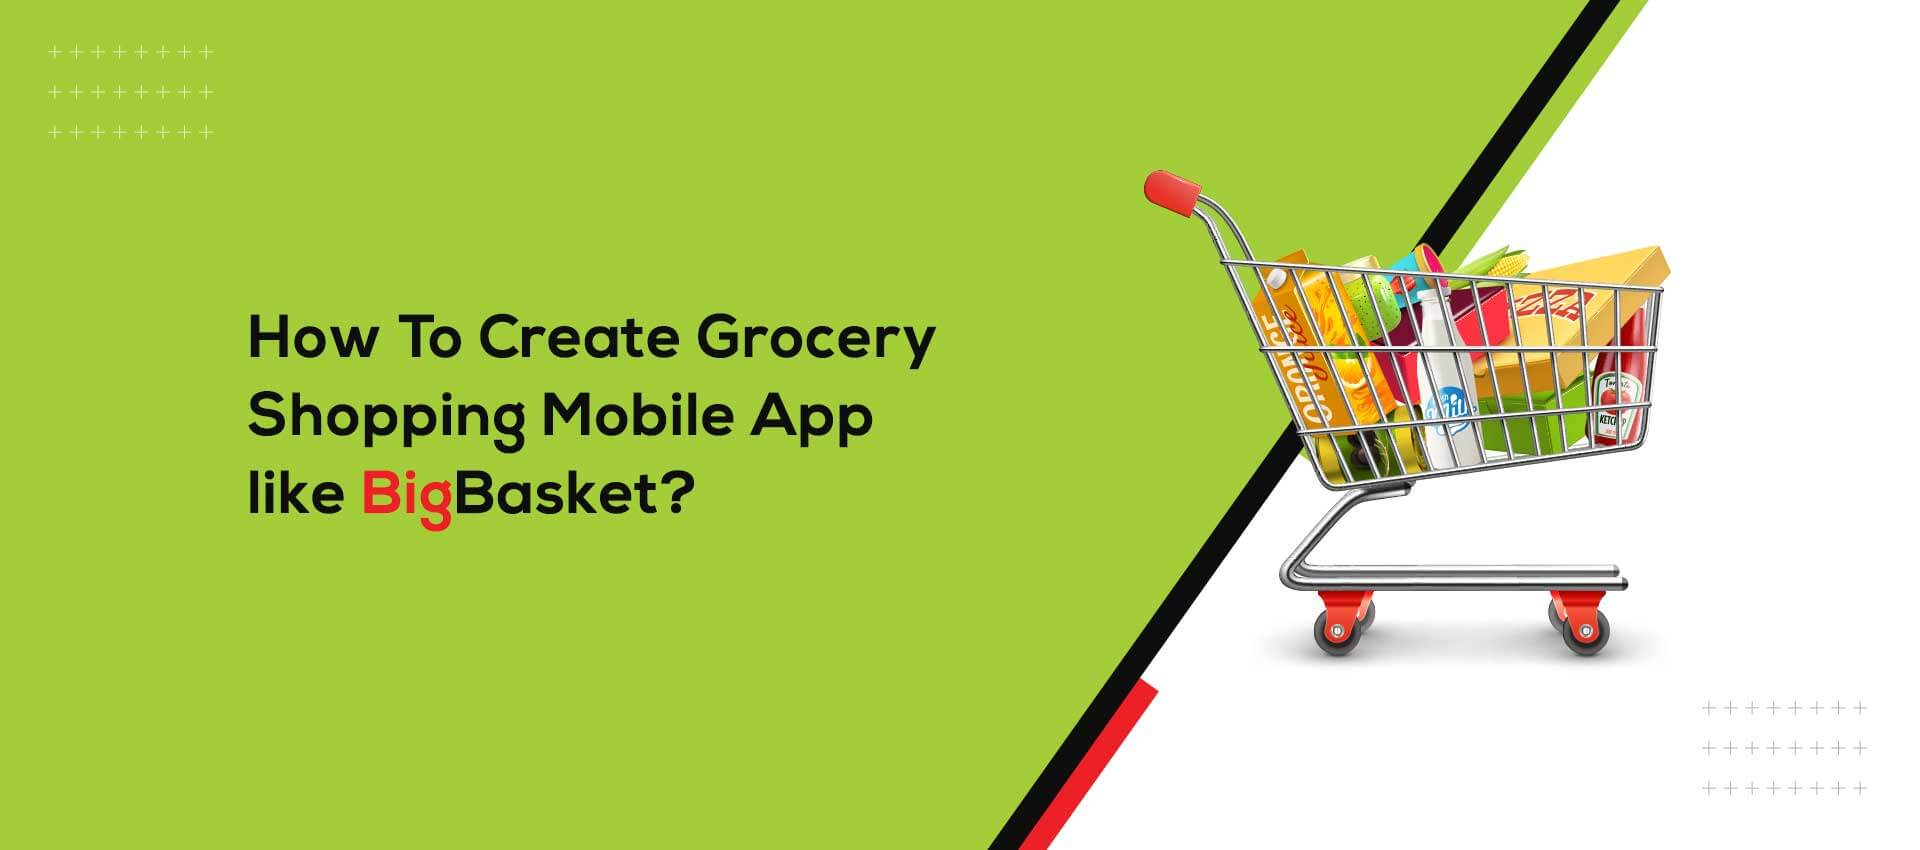 How to Create Grocery Shopping Mobile App like Big Basket and Grofers